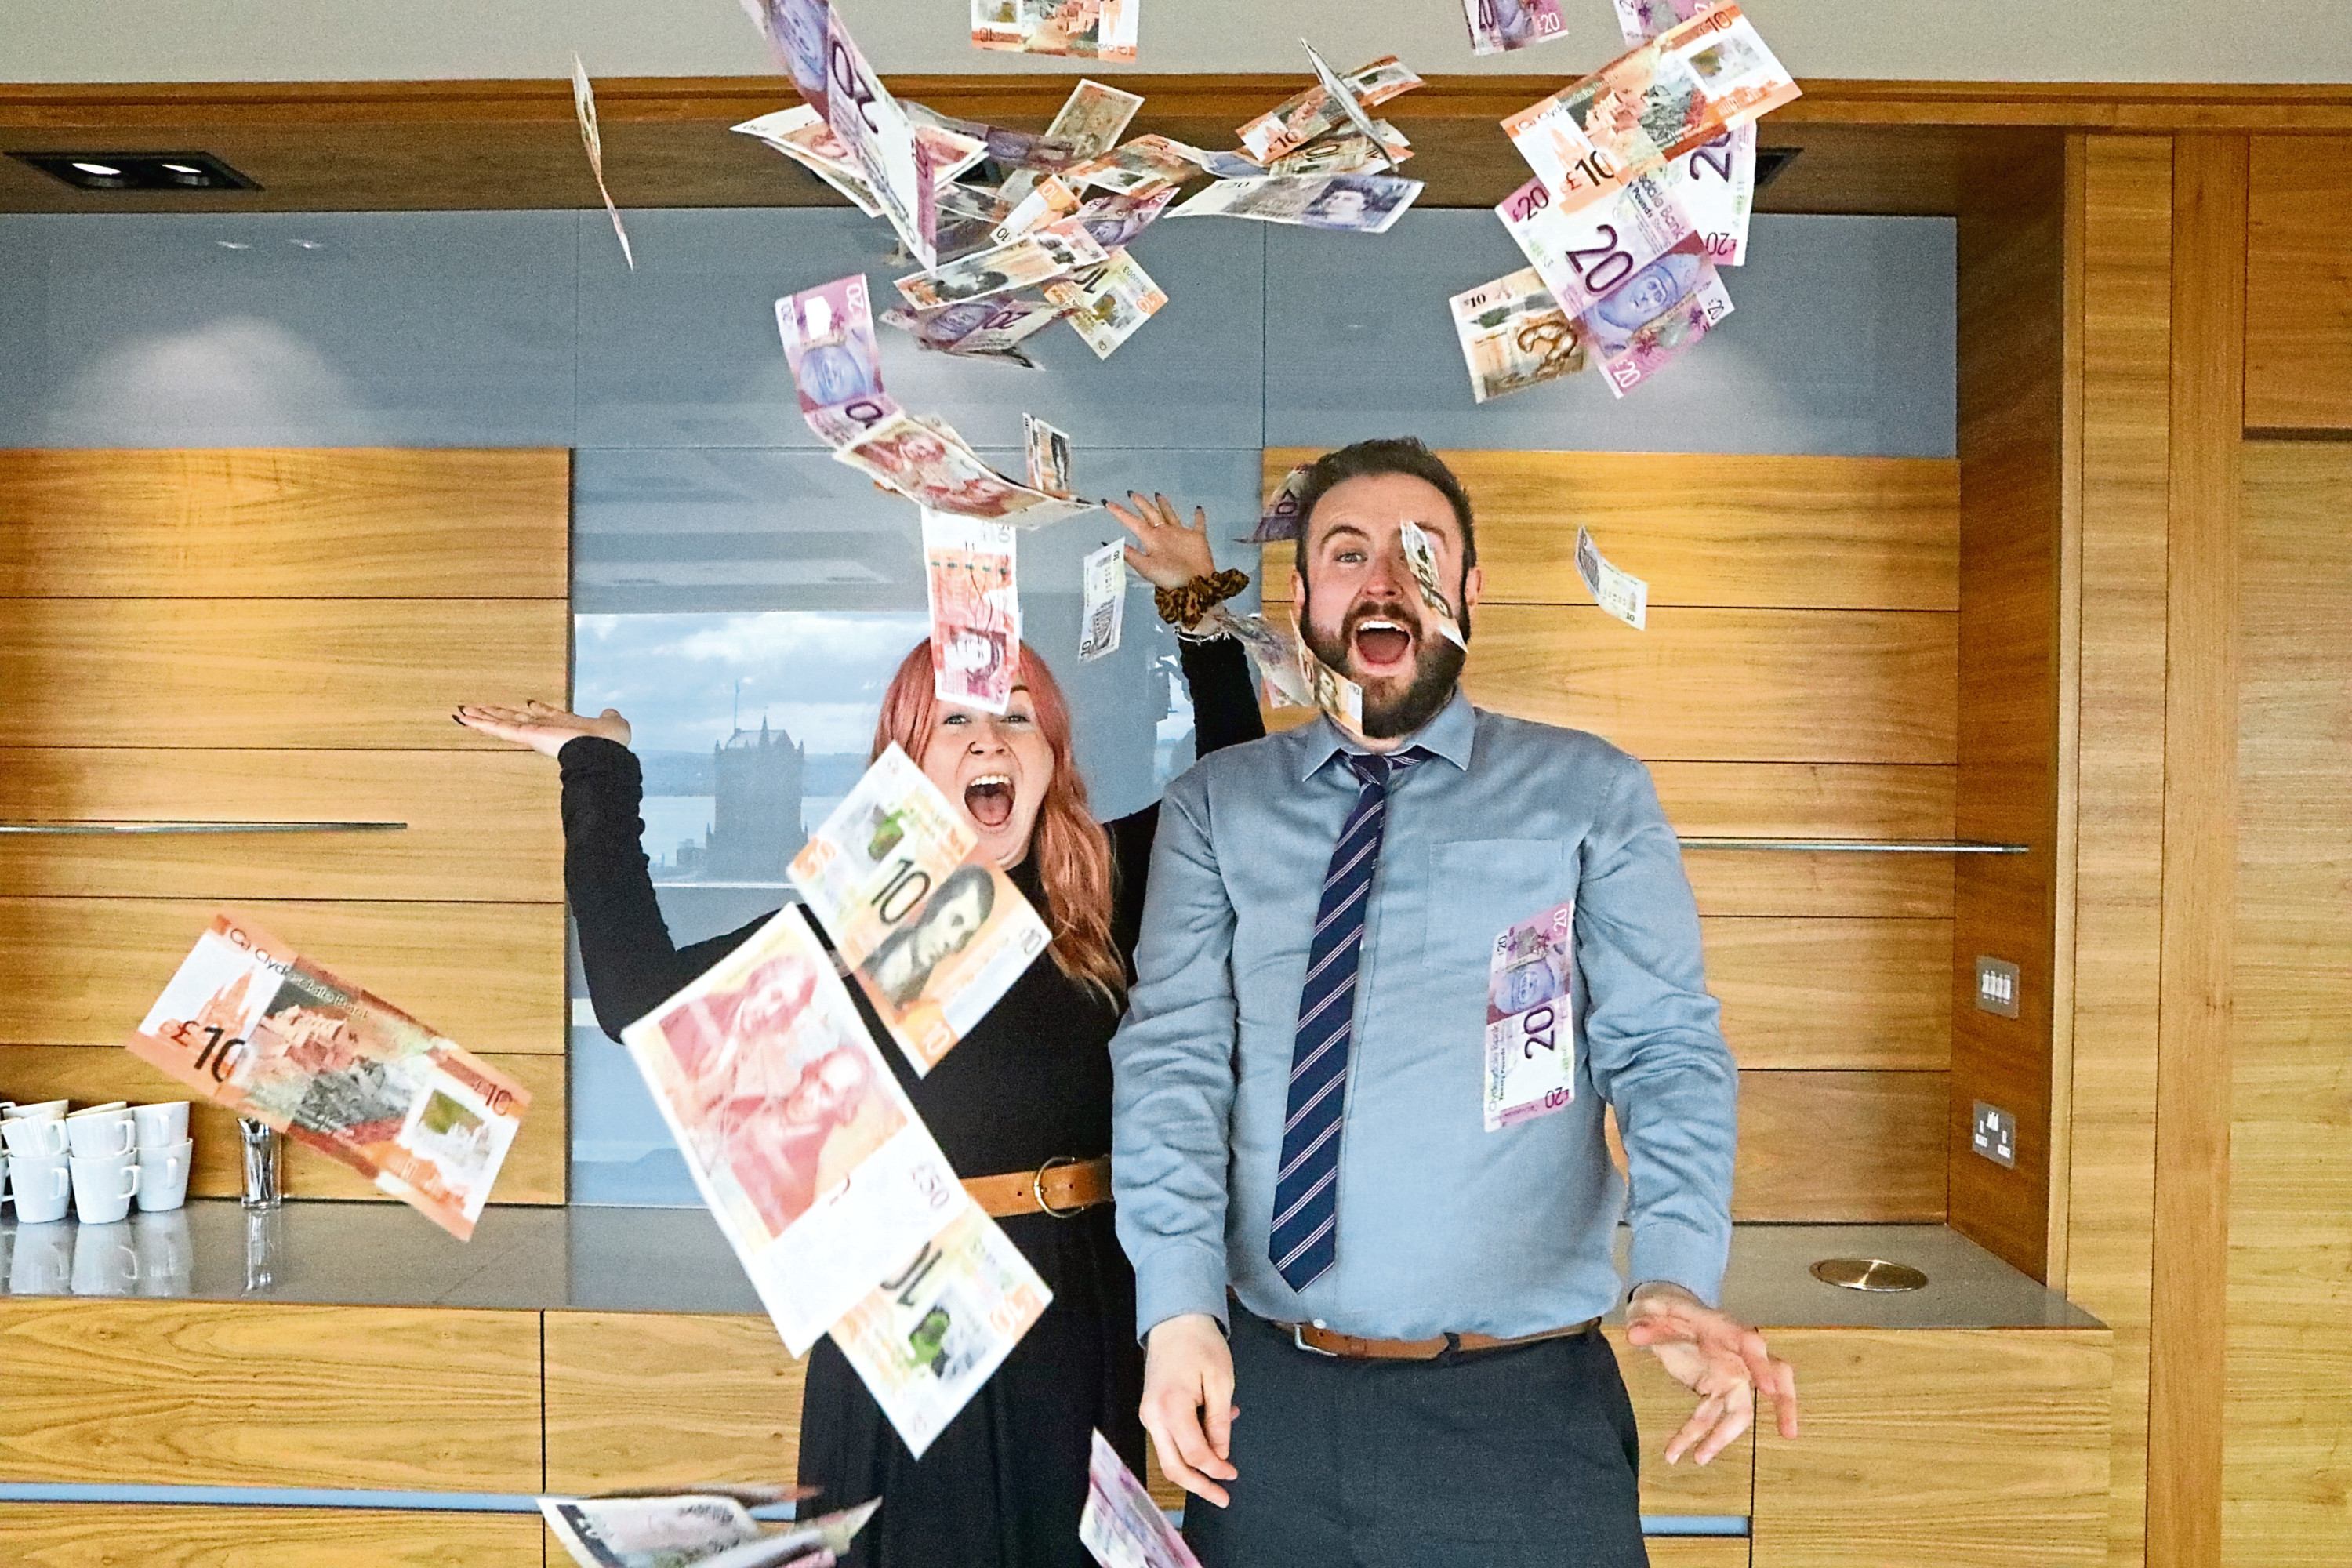 Reporters Amy and Greg today with the £1,000 winning prize money.